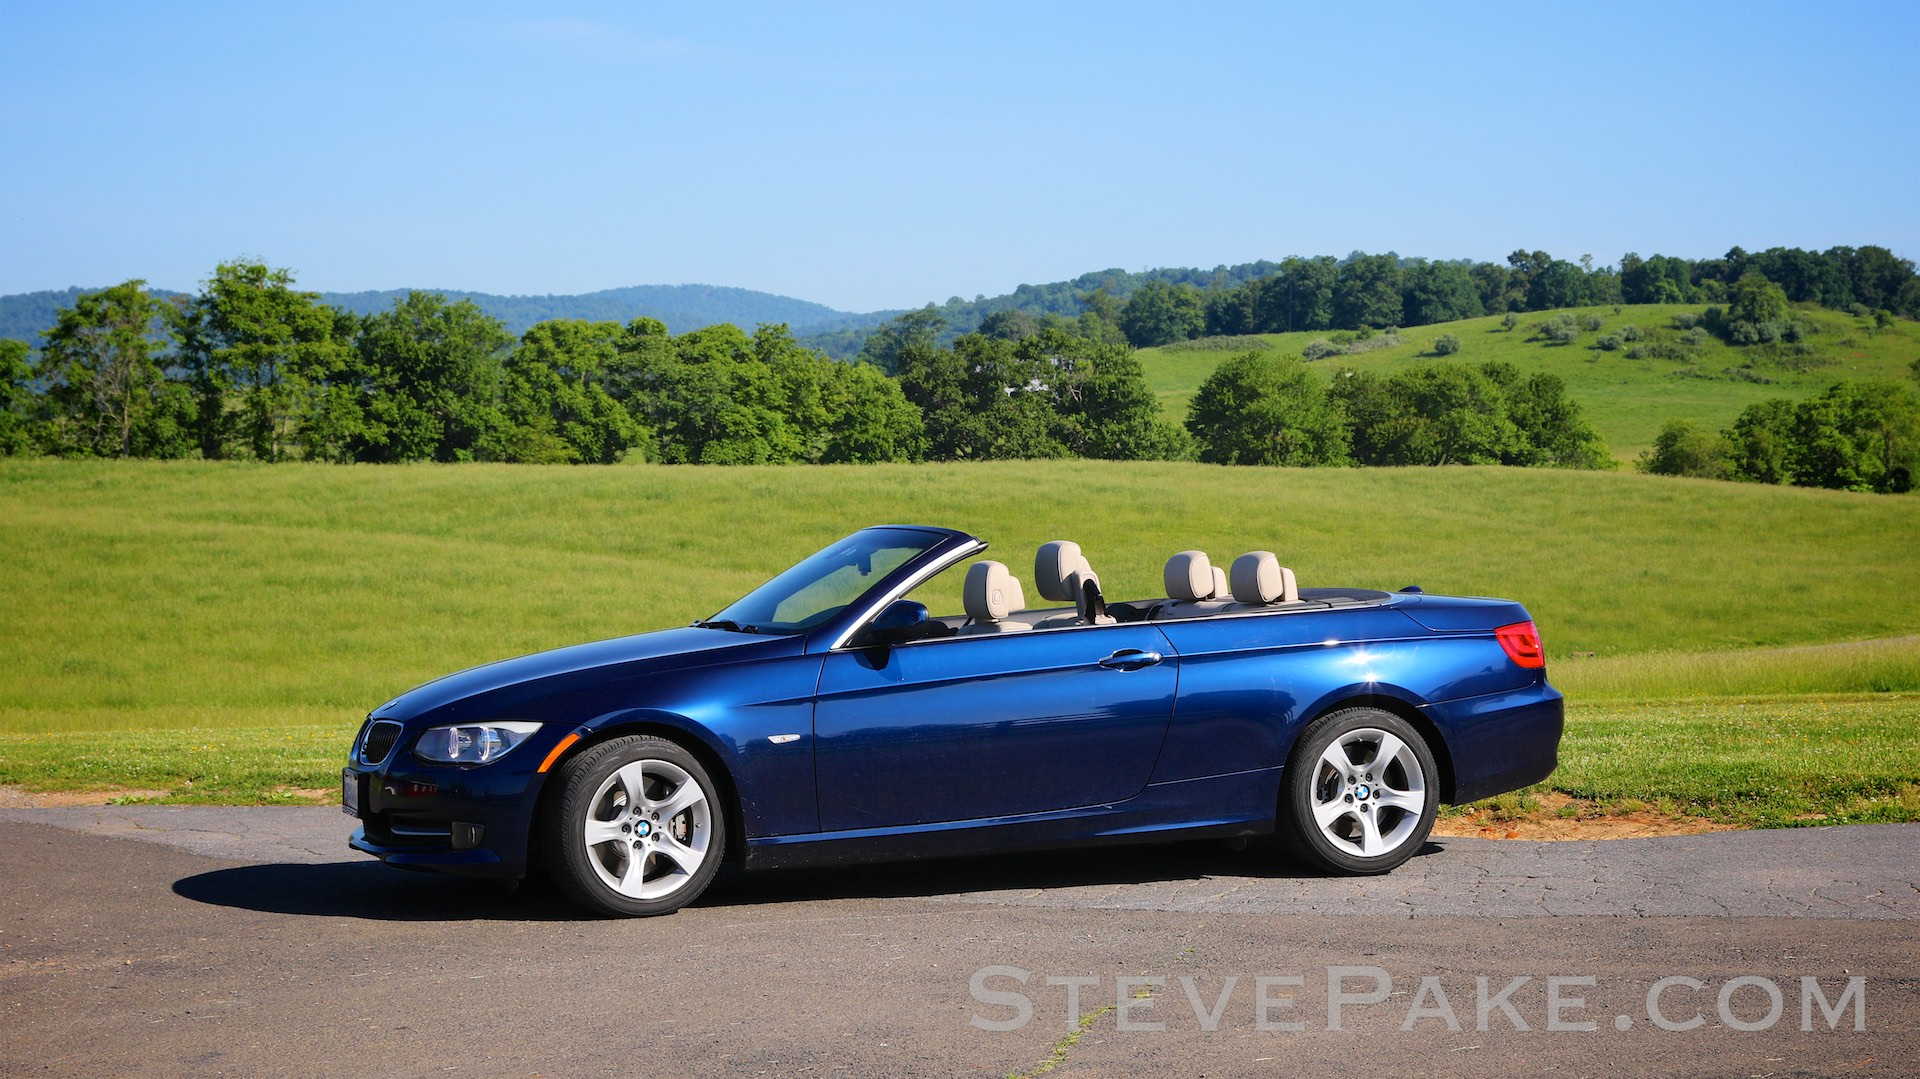 """My beloved 2011 BMW """"E93"""" 335i convertible. It's truly a glorious machine and literally the last of its breed with BMW's classic hydraulic power steering, before they muddied their driving experience with over-electrified cars. I'm glad we kept this one."""